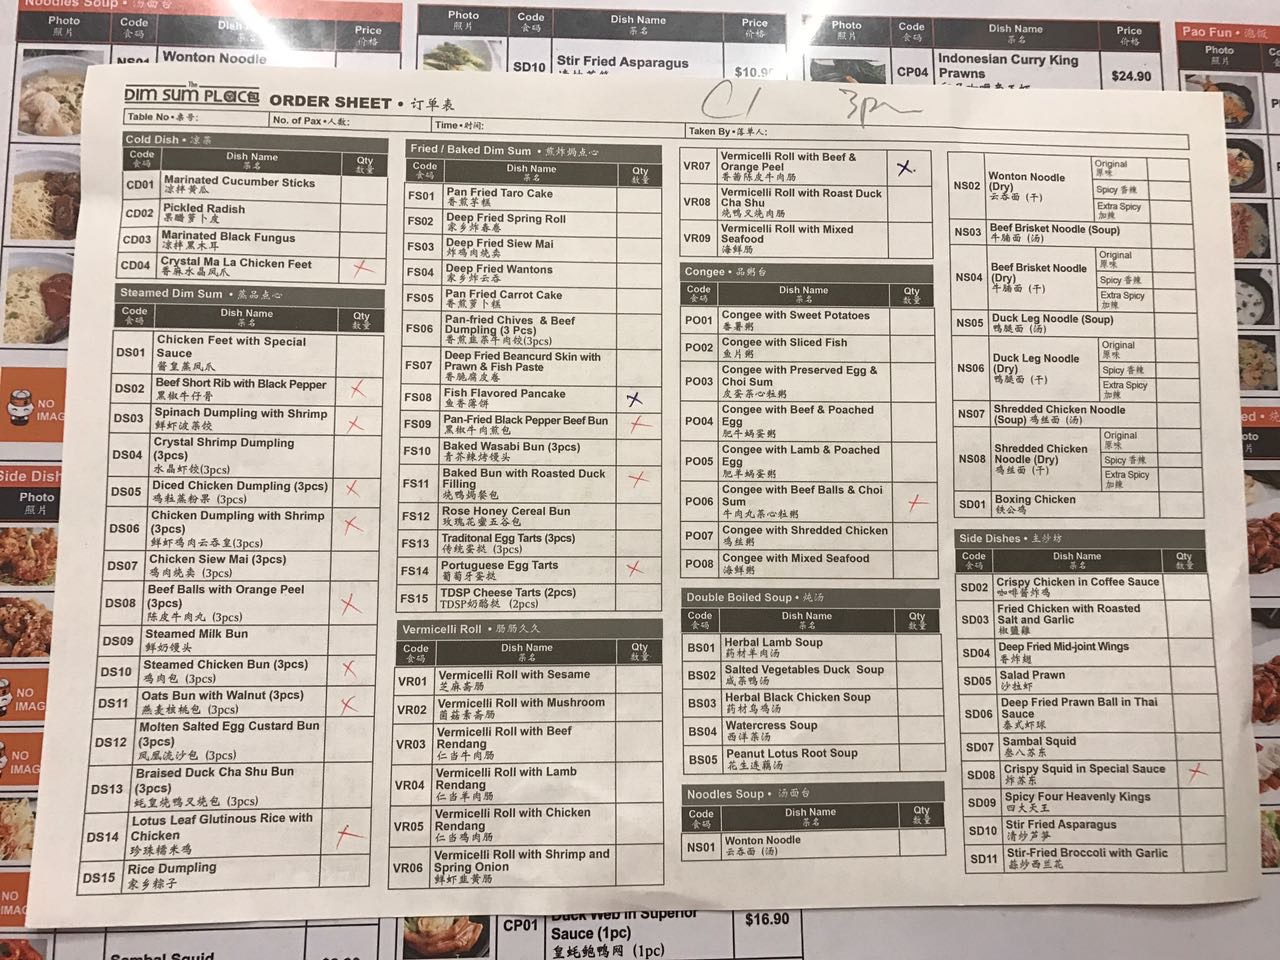 The Dim Sum Place - Order Sheet 1